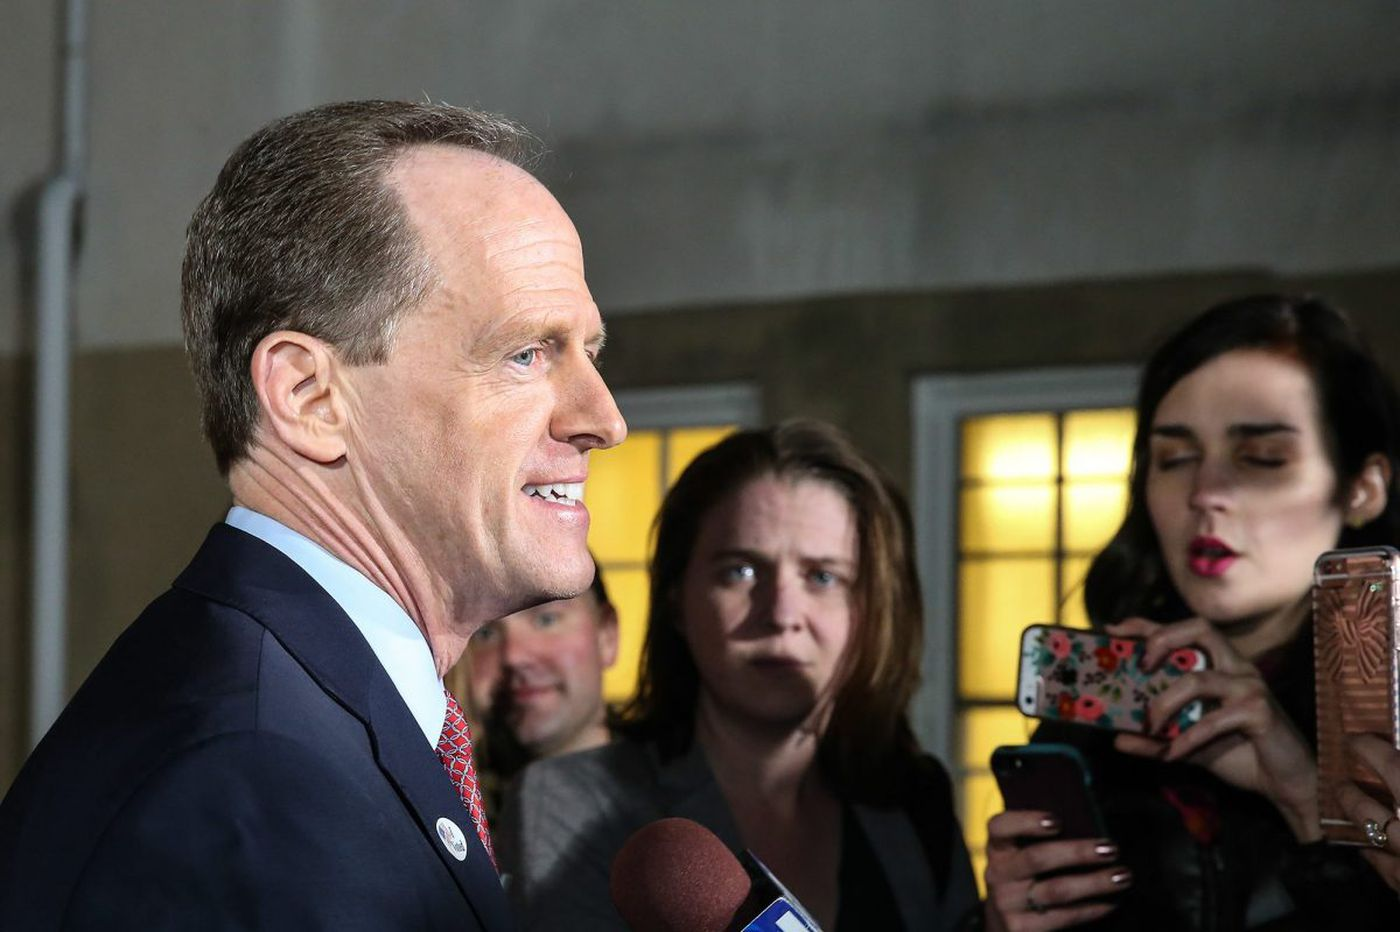 Uncertainty looms for Pat Toomey, GOP ahead of key health care vote